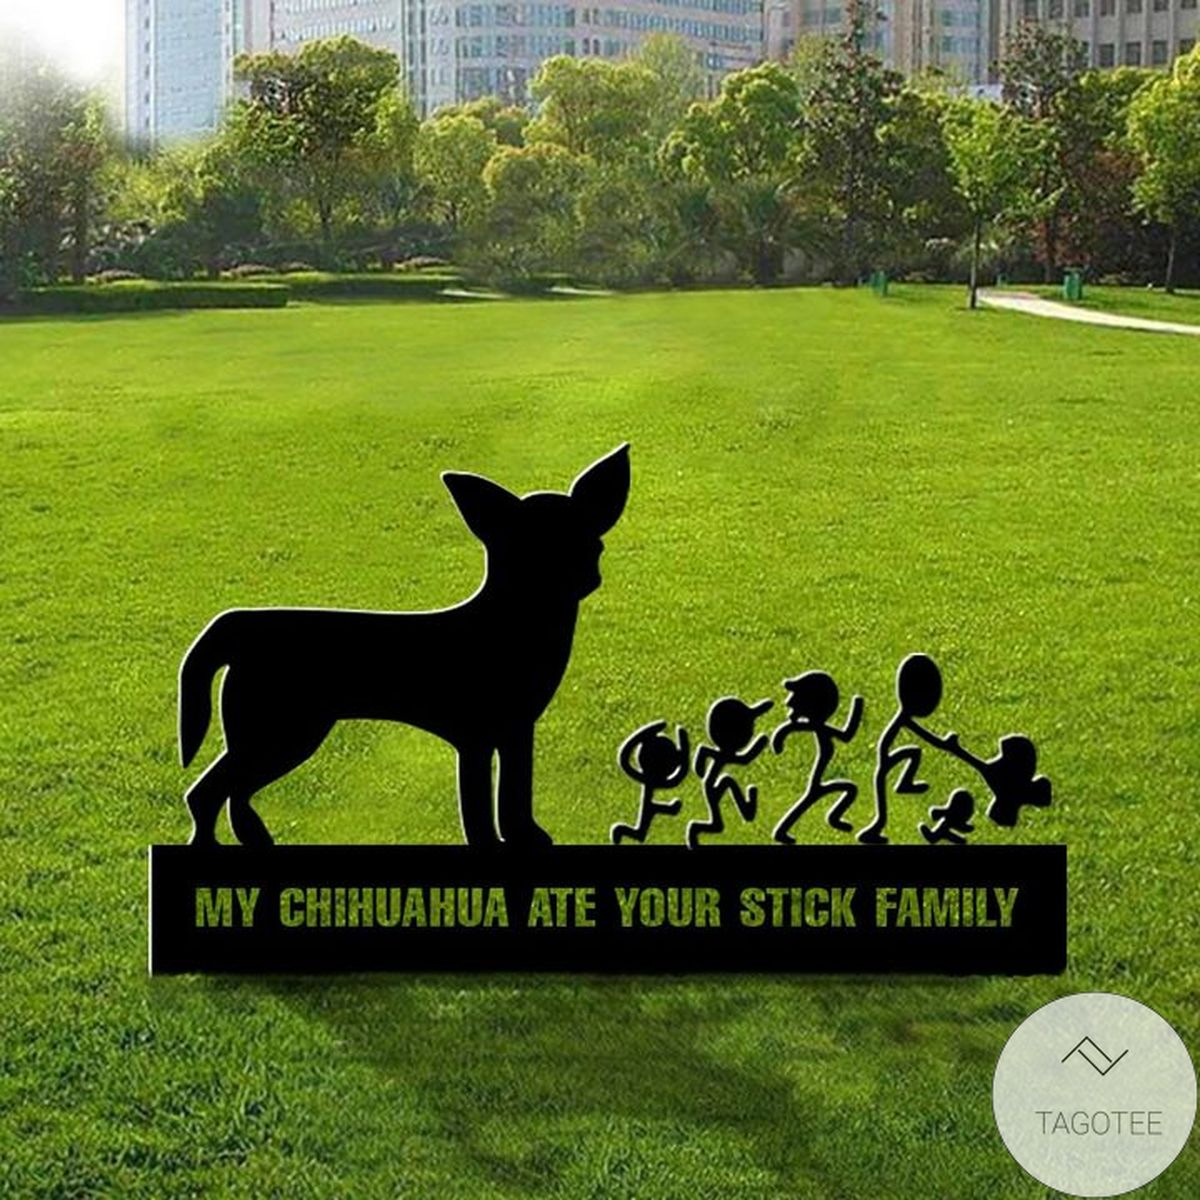 My Chihuahua Ate Your Stick Family Yard Sign